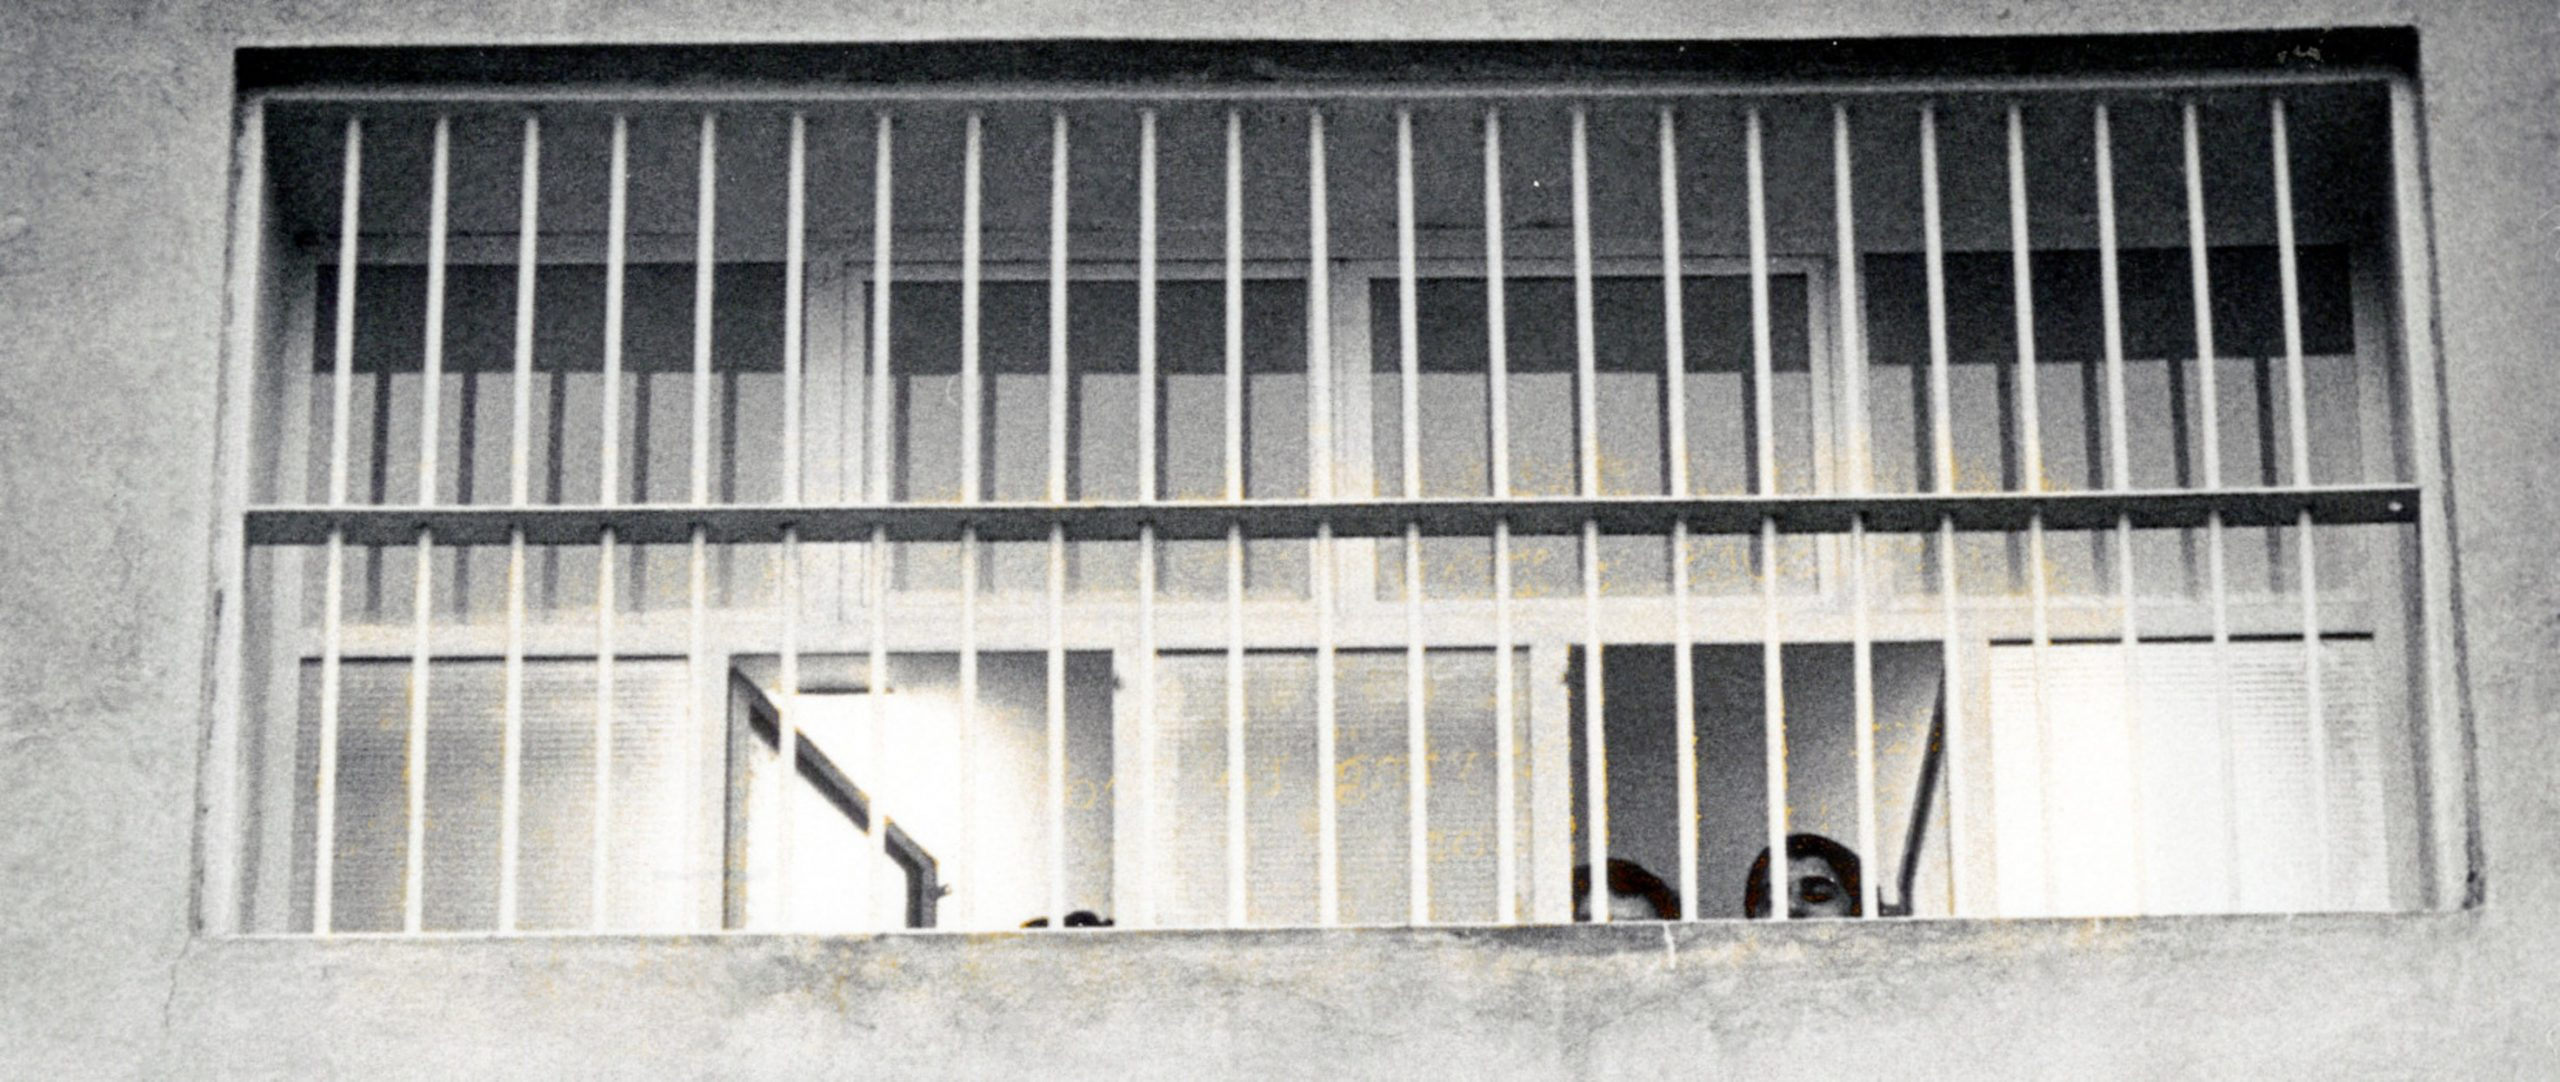 Turkey: Prison release law leaves innocent and vulnerable prisoners at risk of COVID-19